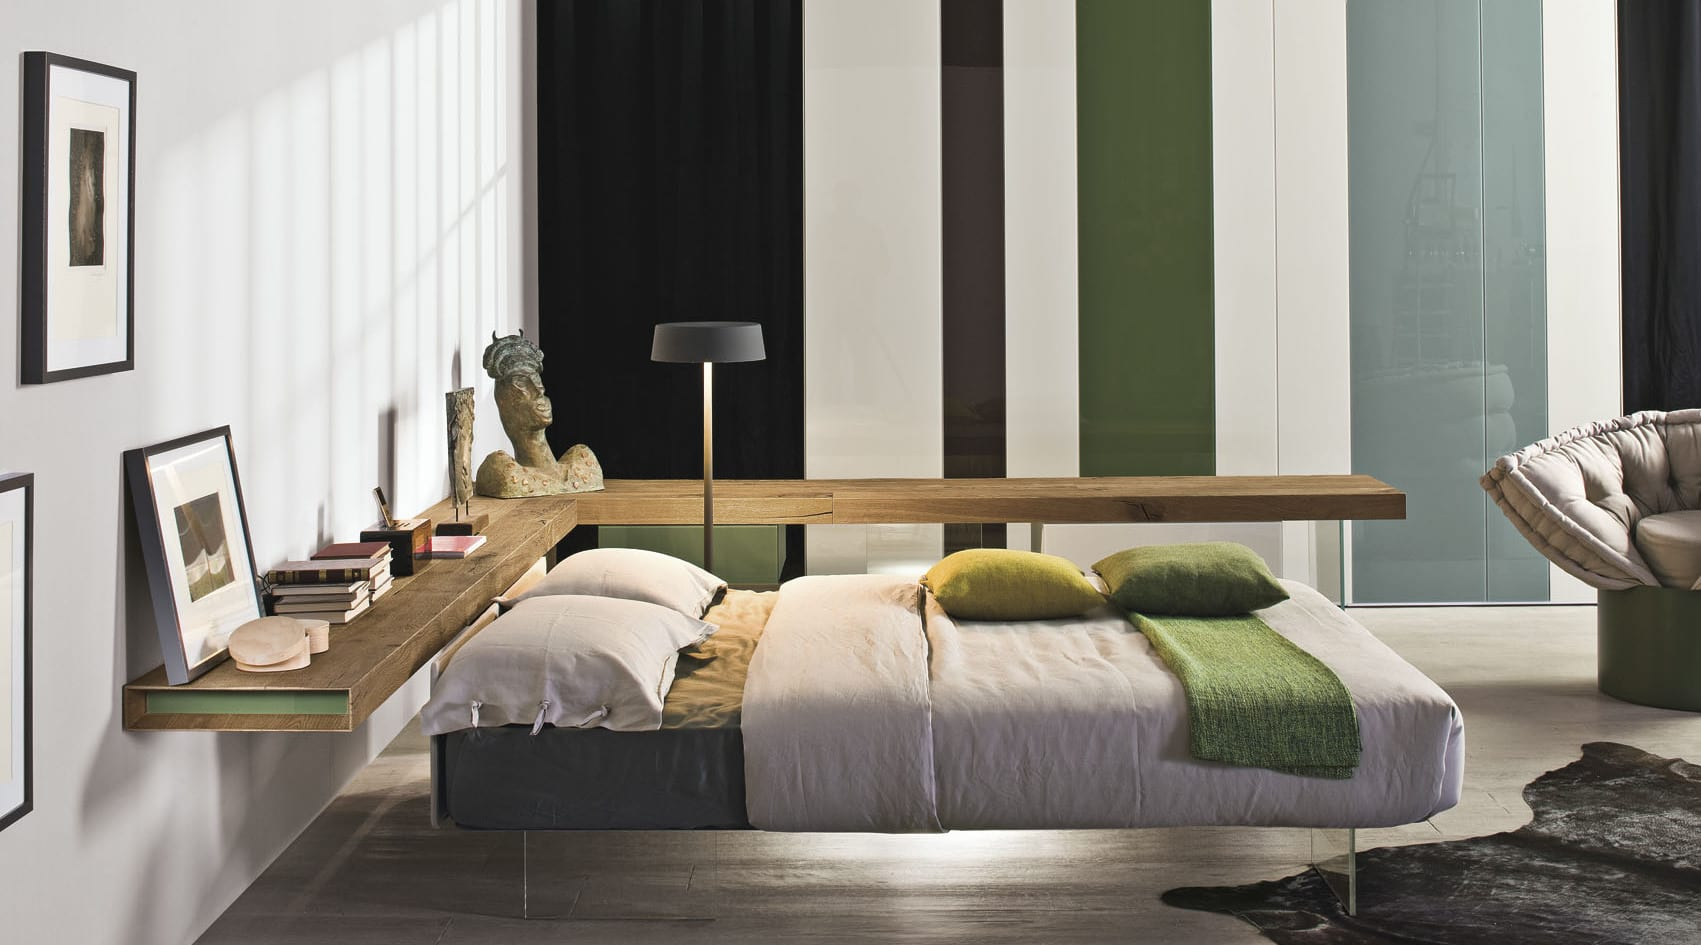 einrichtungsideen f r minimalistische schlafzimmer freshouse. Black Bedroom Furniture Sets. Home Design Ideas